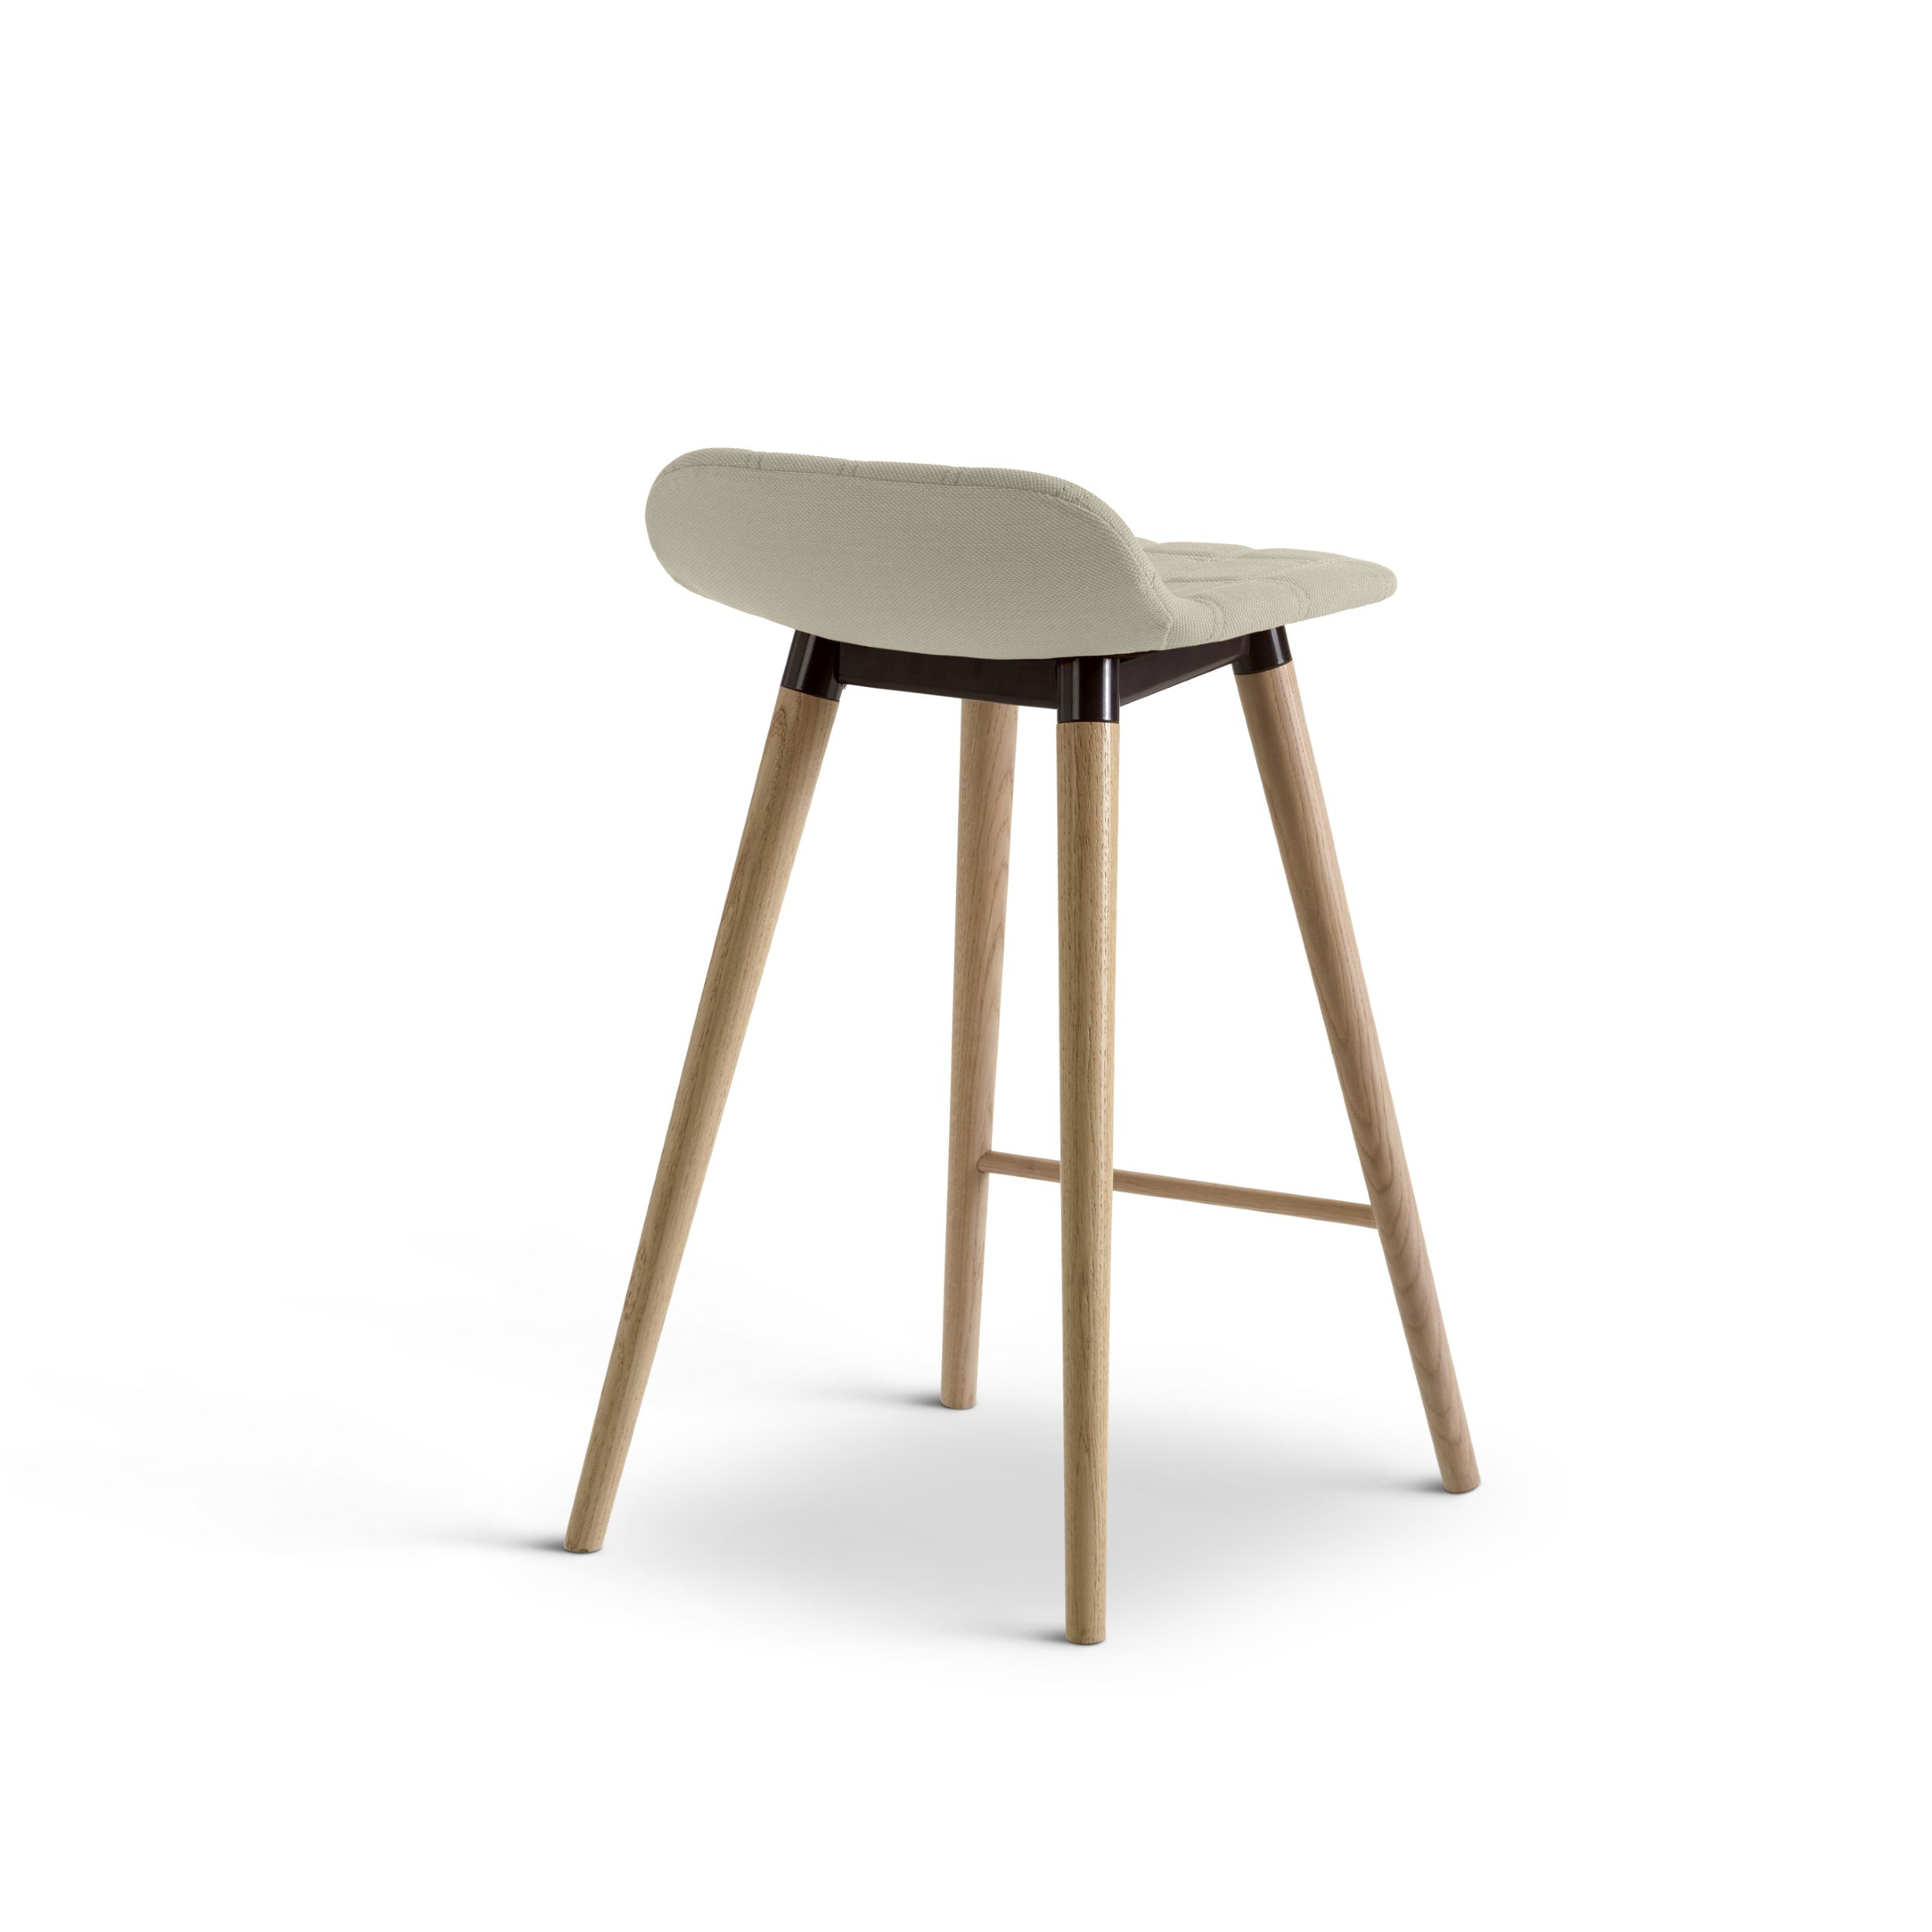 Wood Bar Chairs Bop Wood Bar Stool Furniture By Knudsen Berg Hindenes Offecct